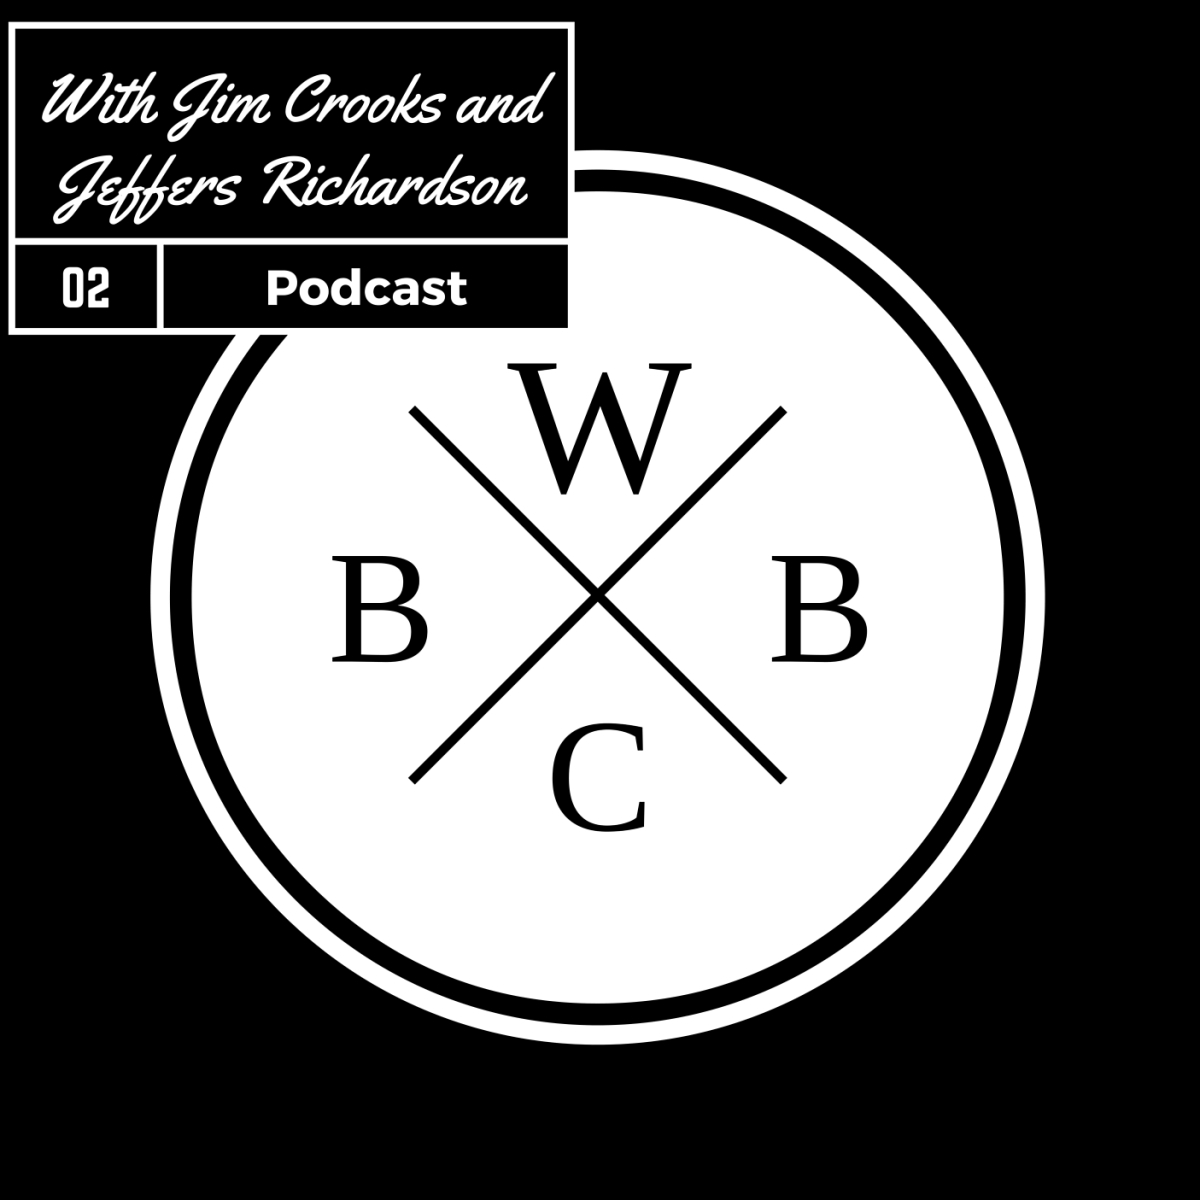 WCBB Podcast Episode 2: Jim Crooks and Jeffers Richardson